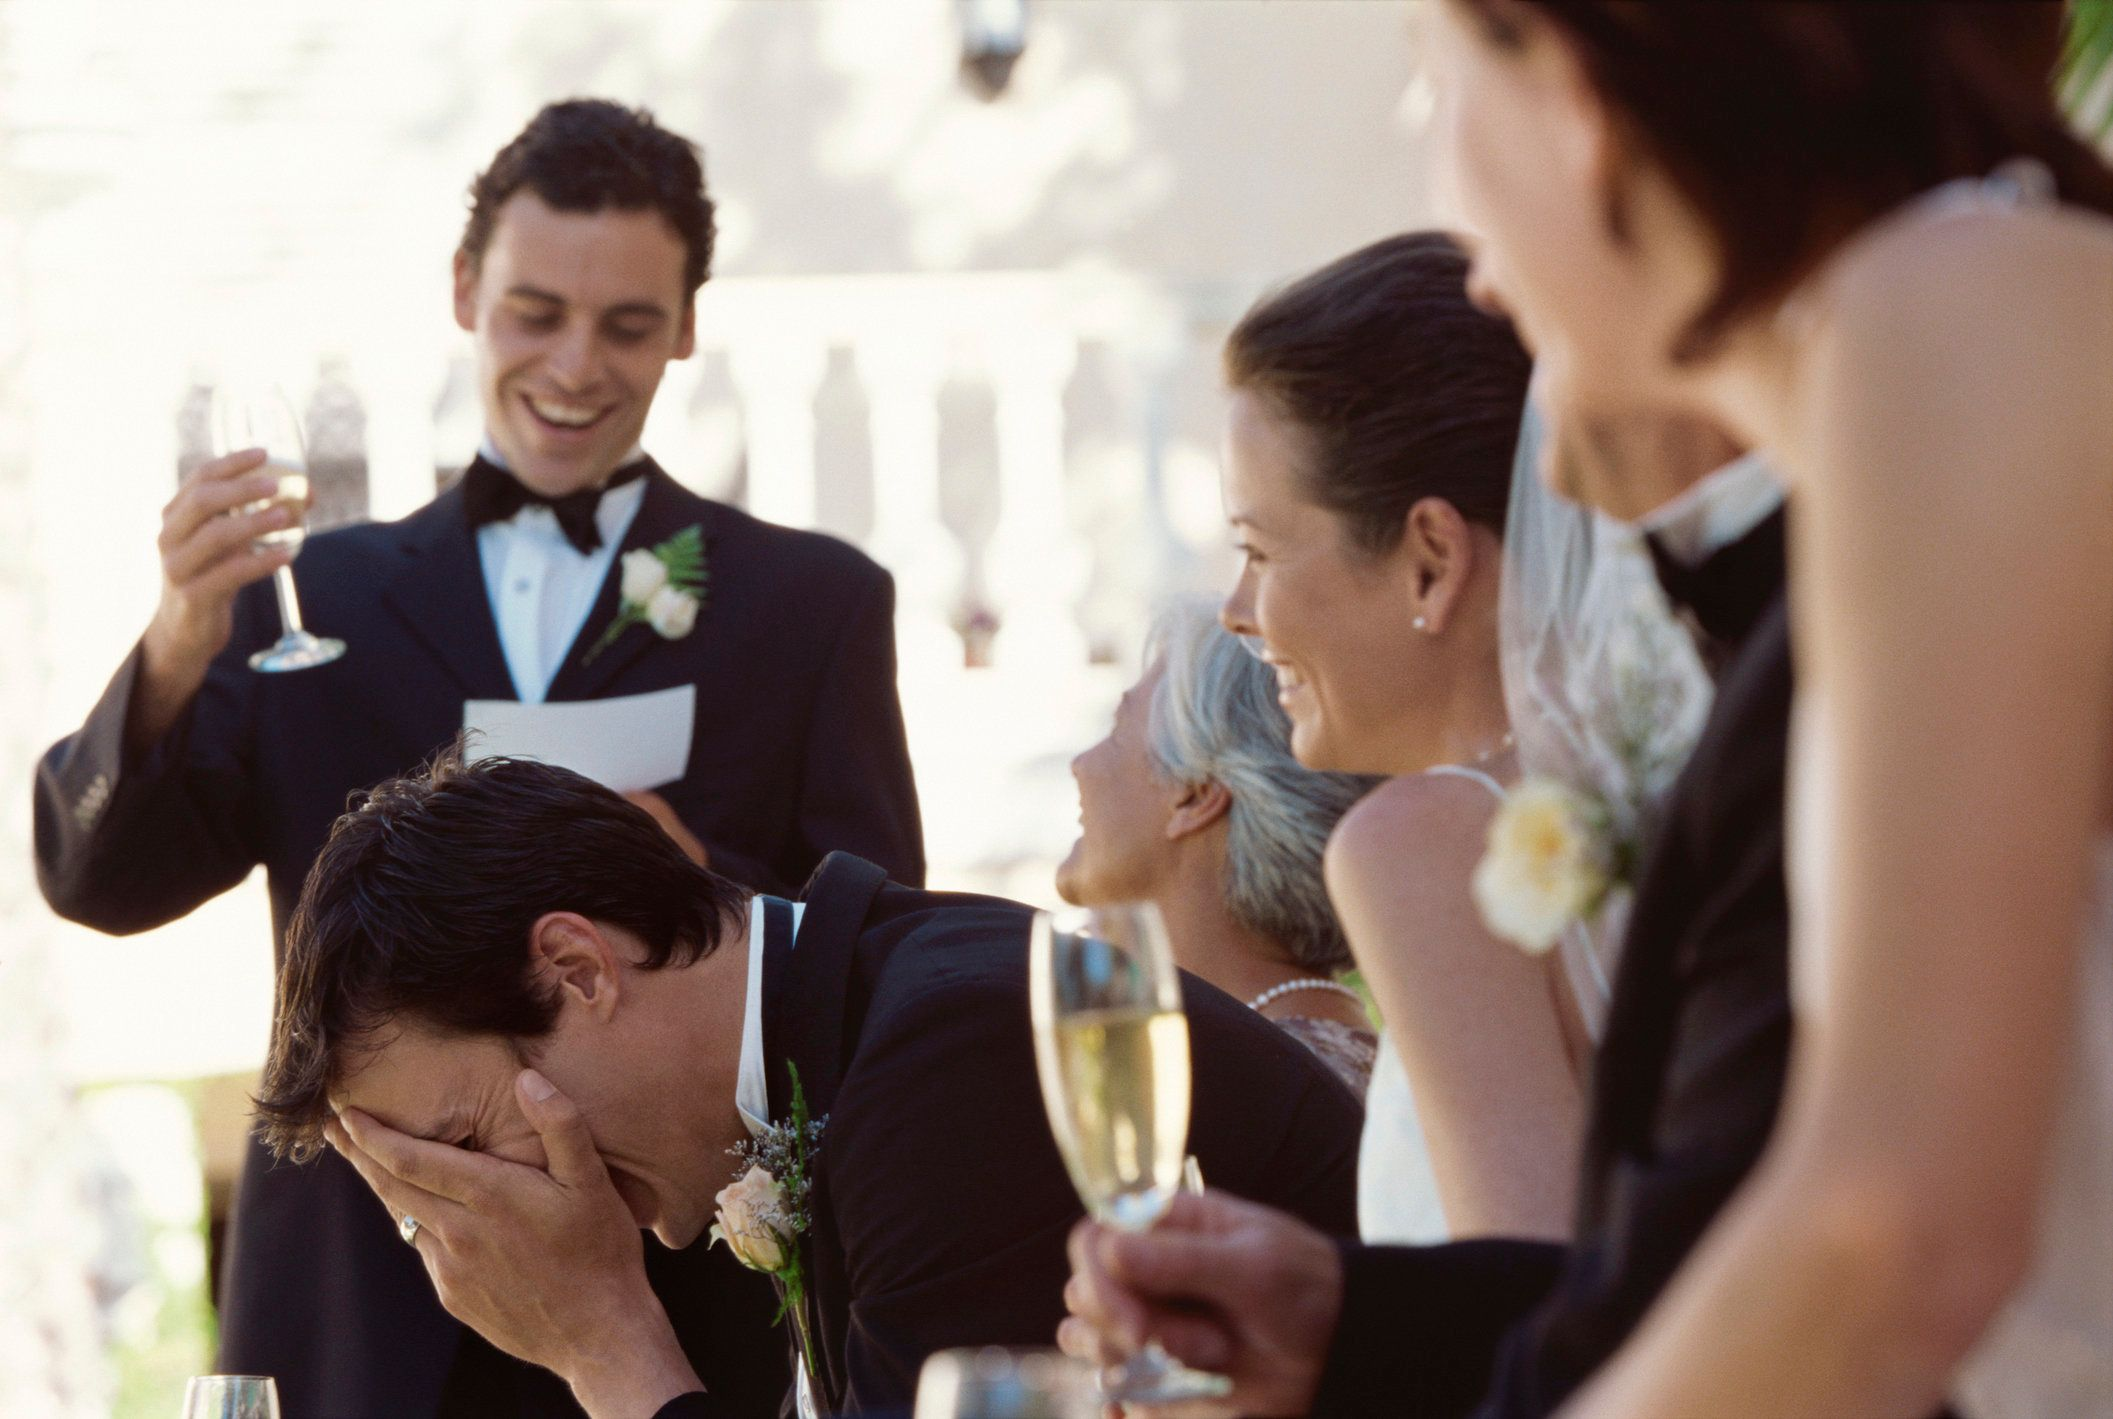 Funny wedding speeches may be the gold standard, but not everyone is a comedian. Below are some...